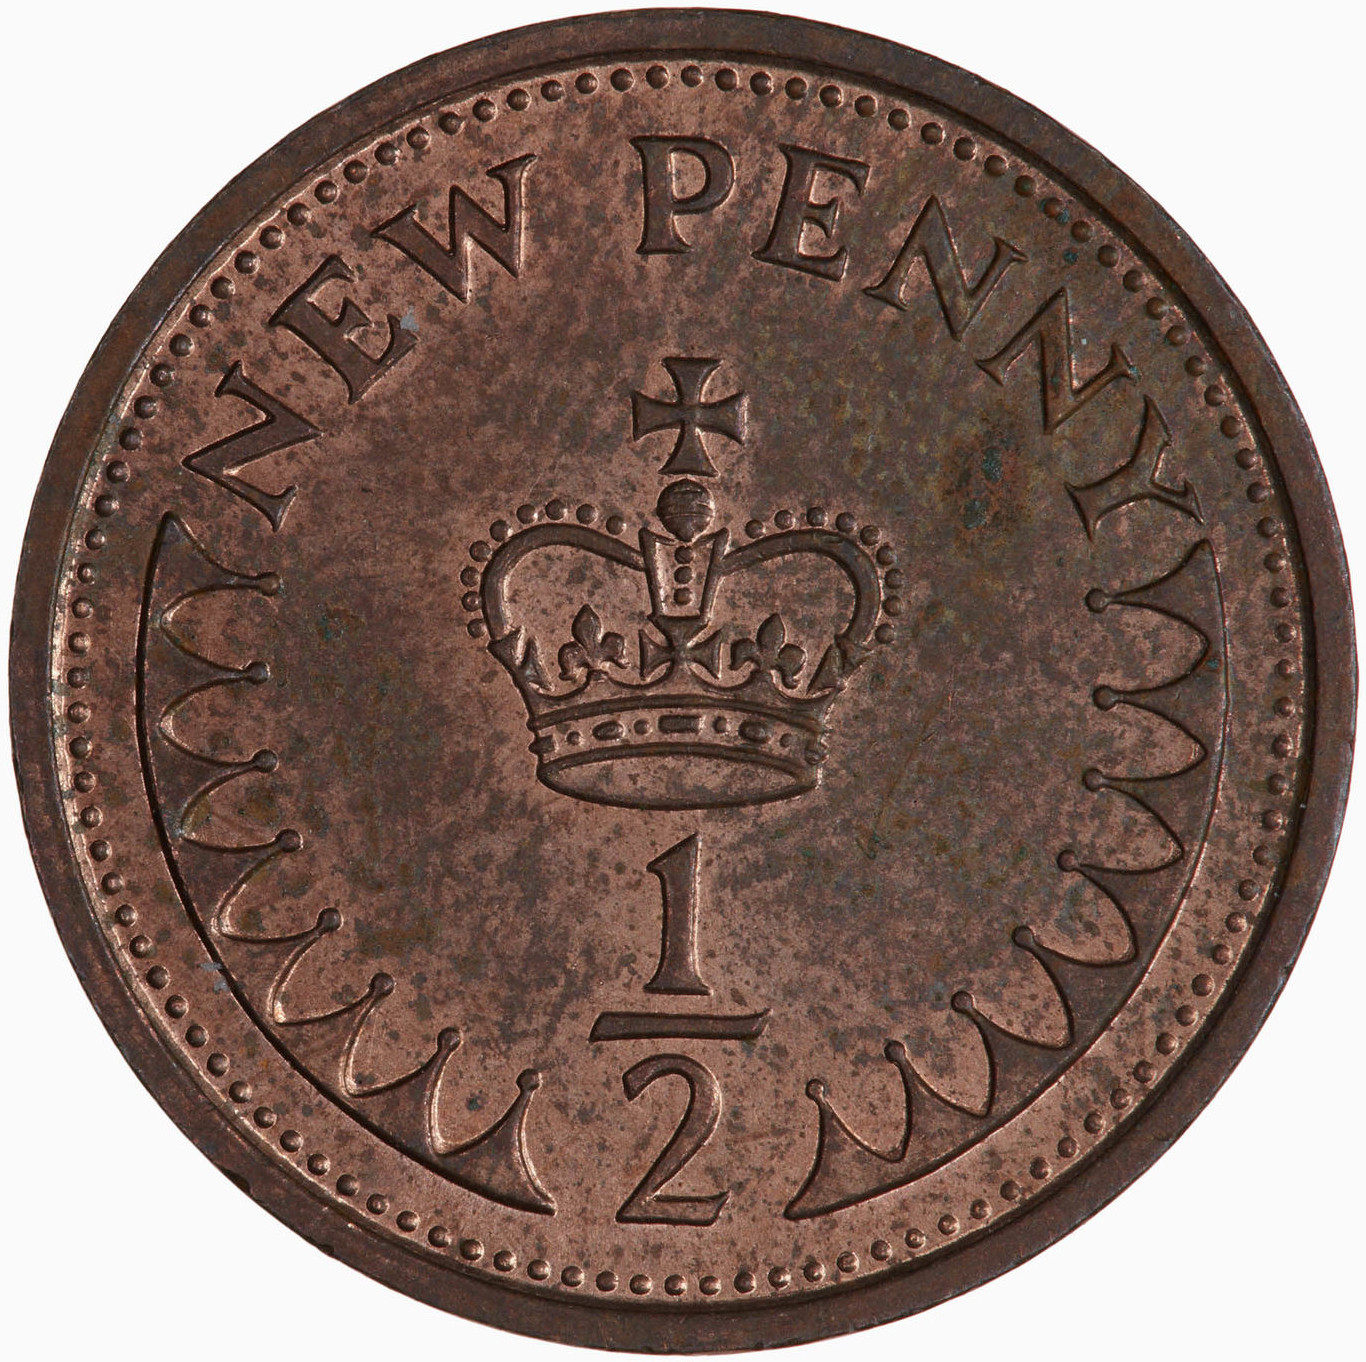 Half Penny 1974, Coin from United Kingdom - Online Coin Club